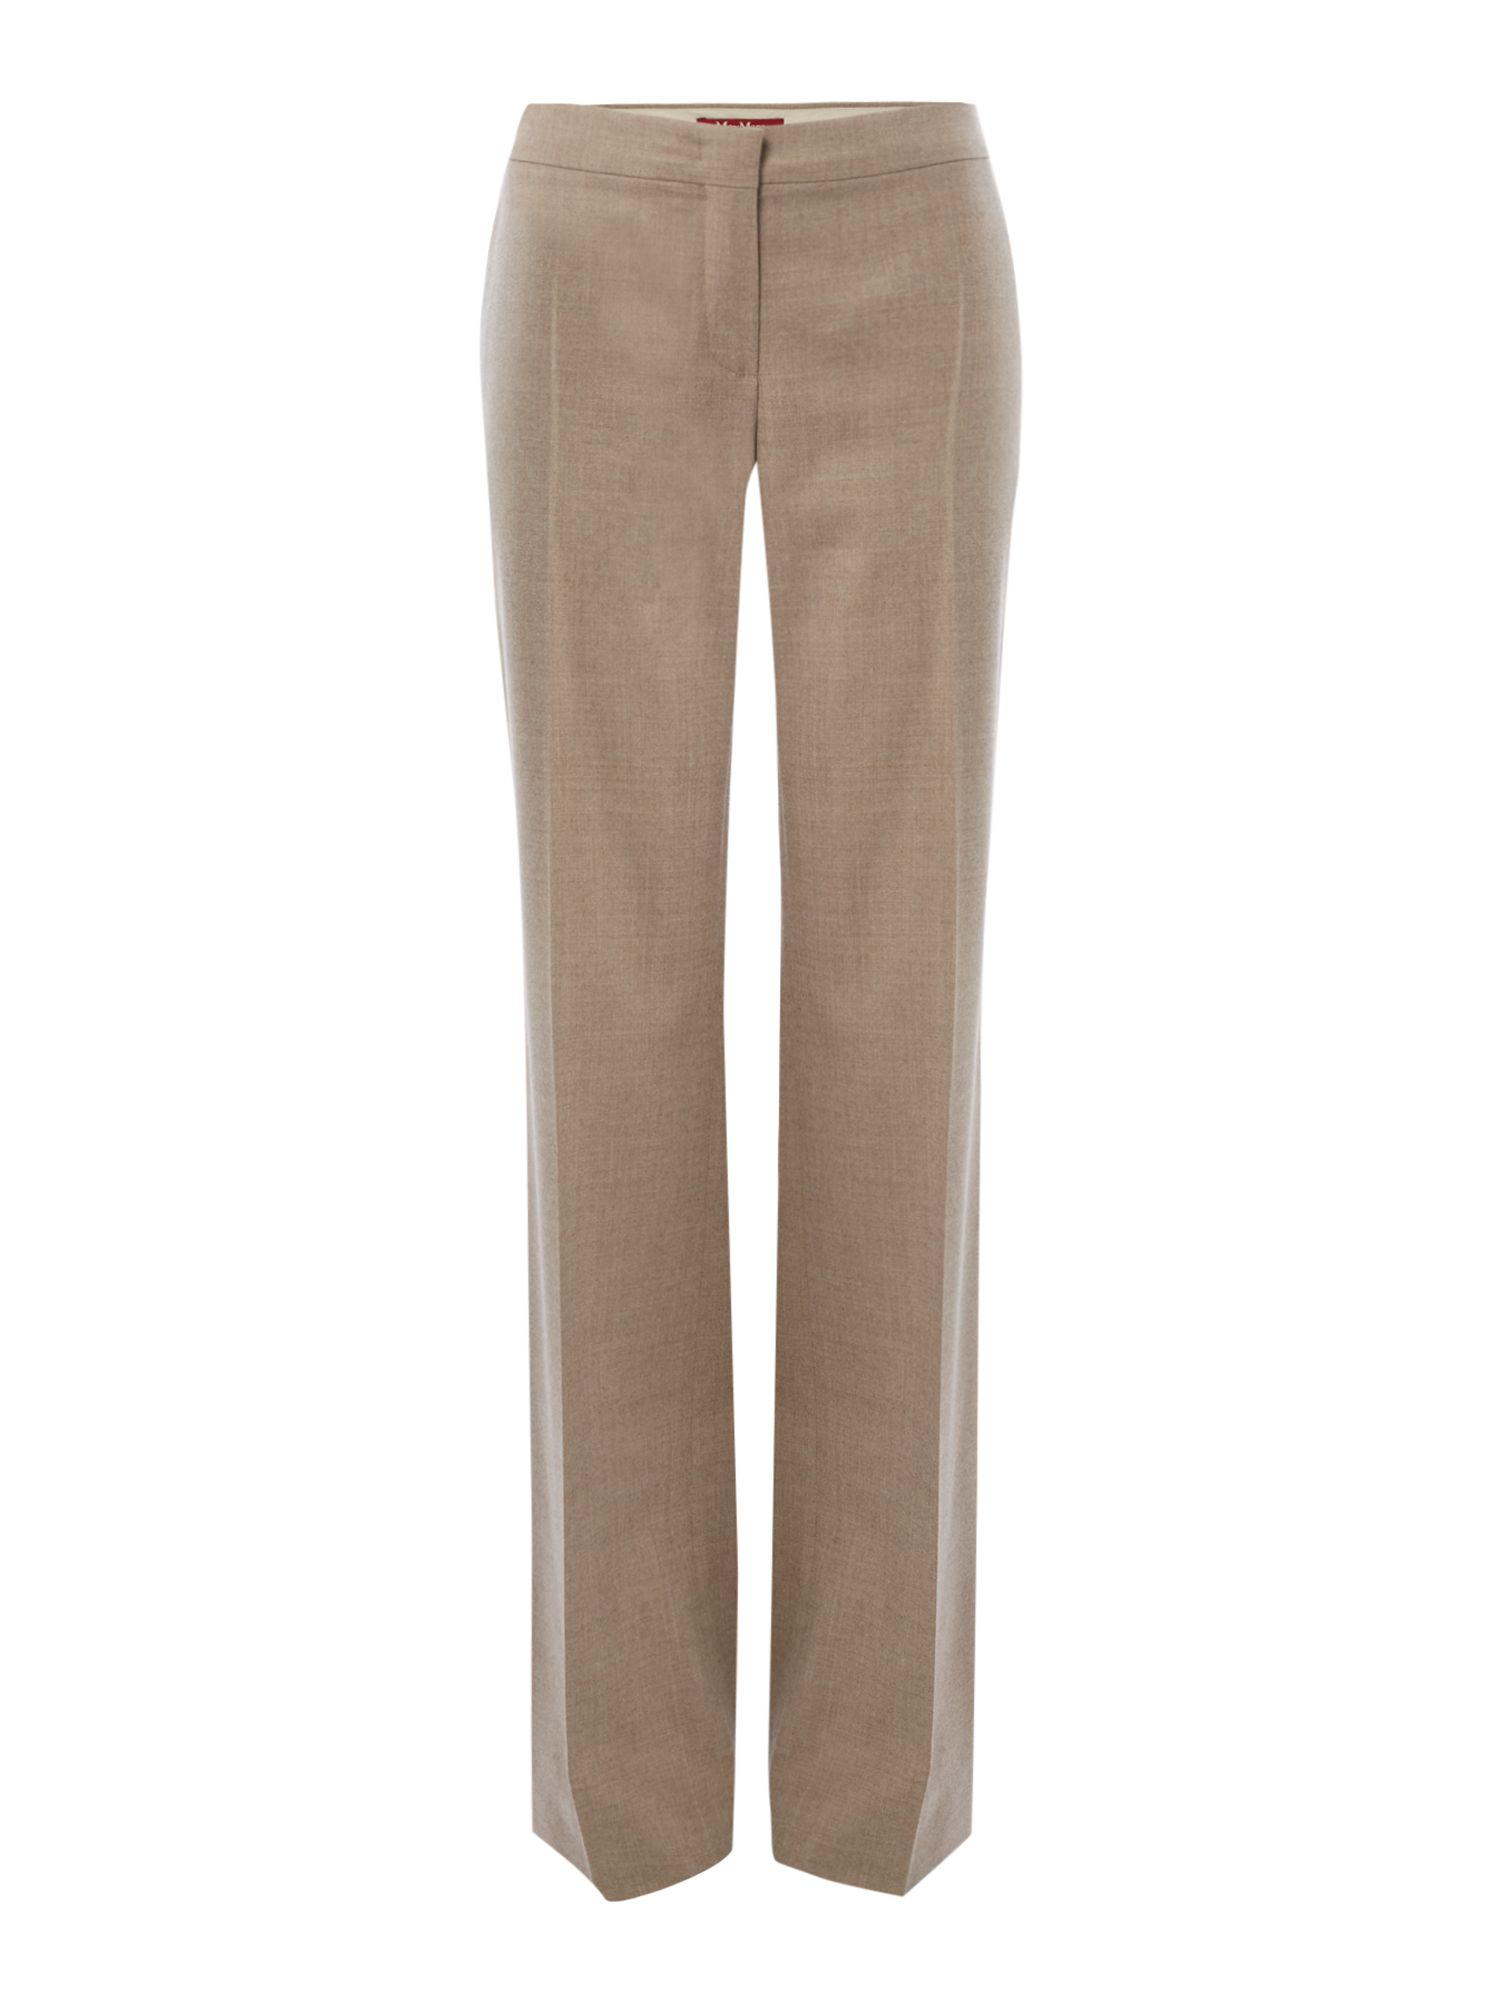 Max Mara Studio Azoto long wool trouser, Sand